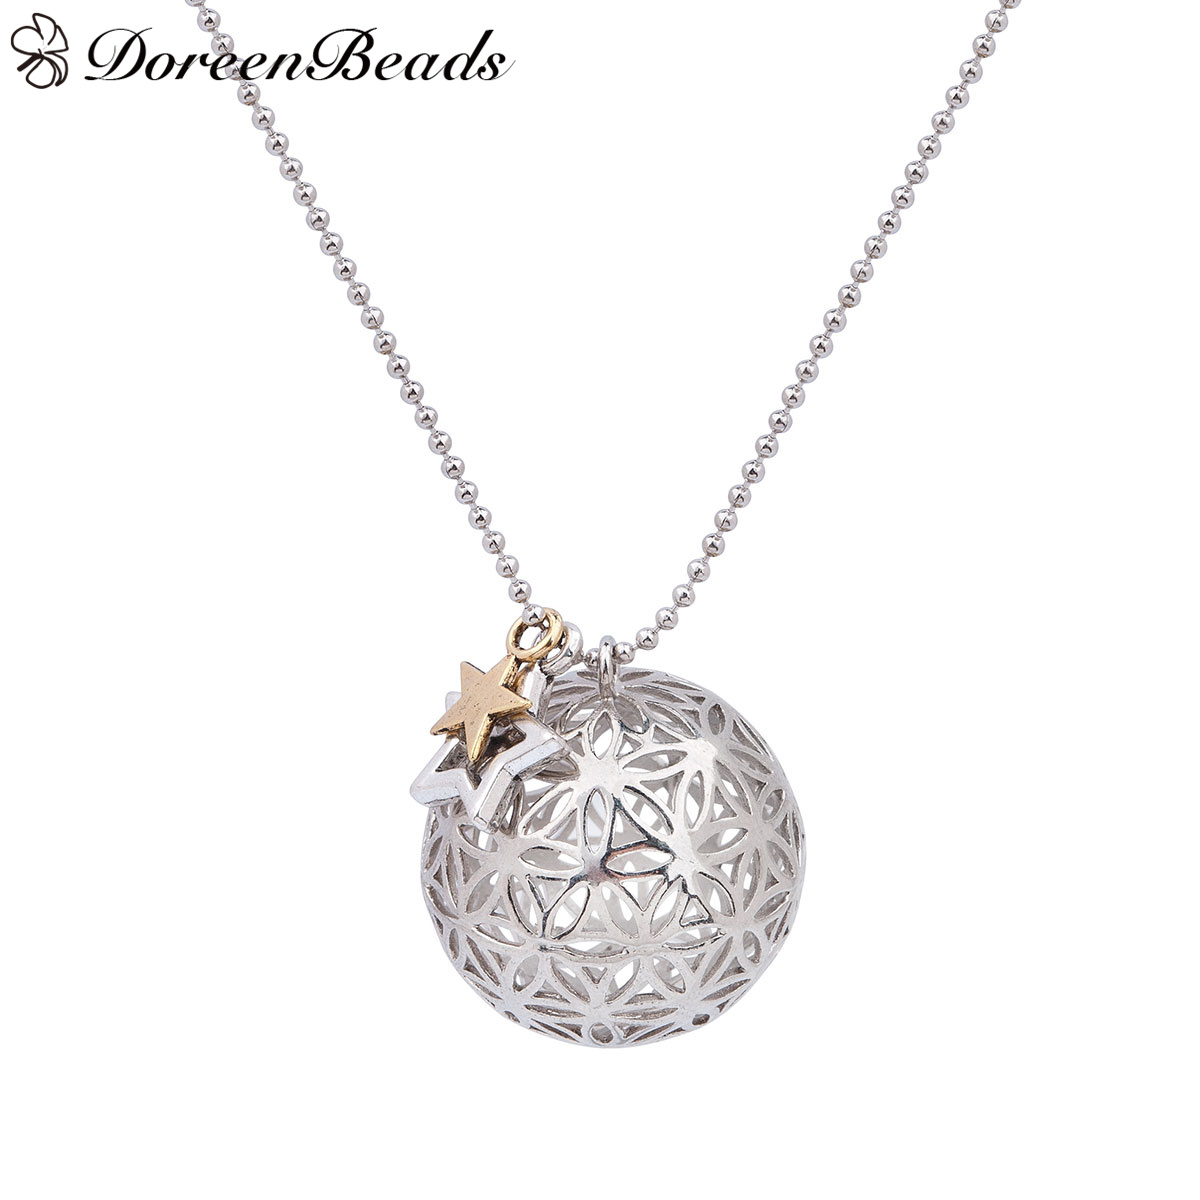 DoreenBeads Copper Flower Of Life Necklace Ball Chain antique dull silver color Pentagram <font><b>Star</b></font> Round Hollow 67cm long